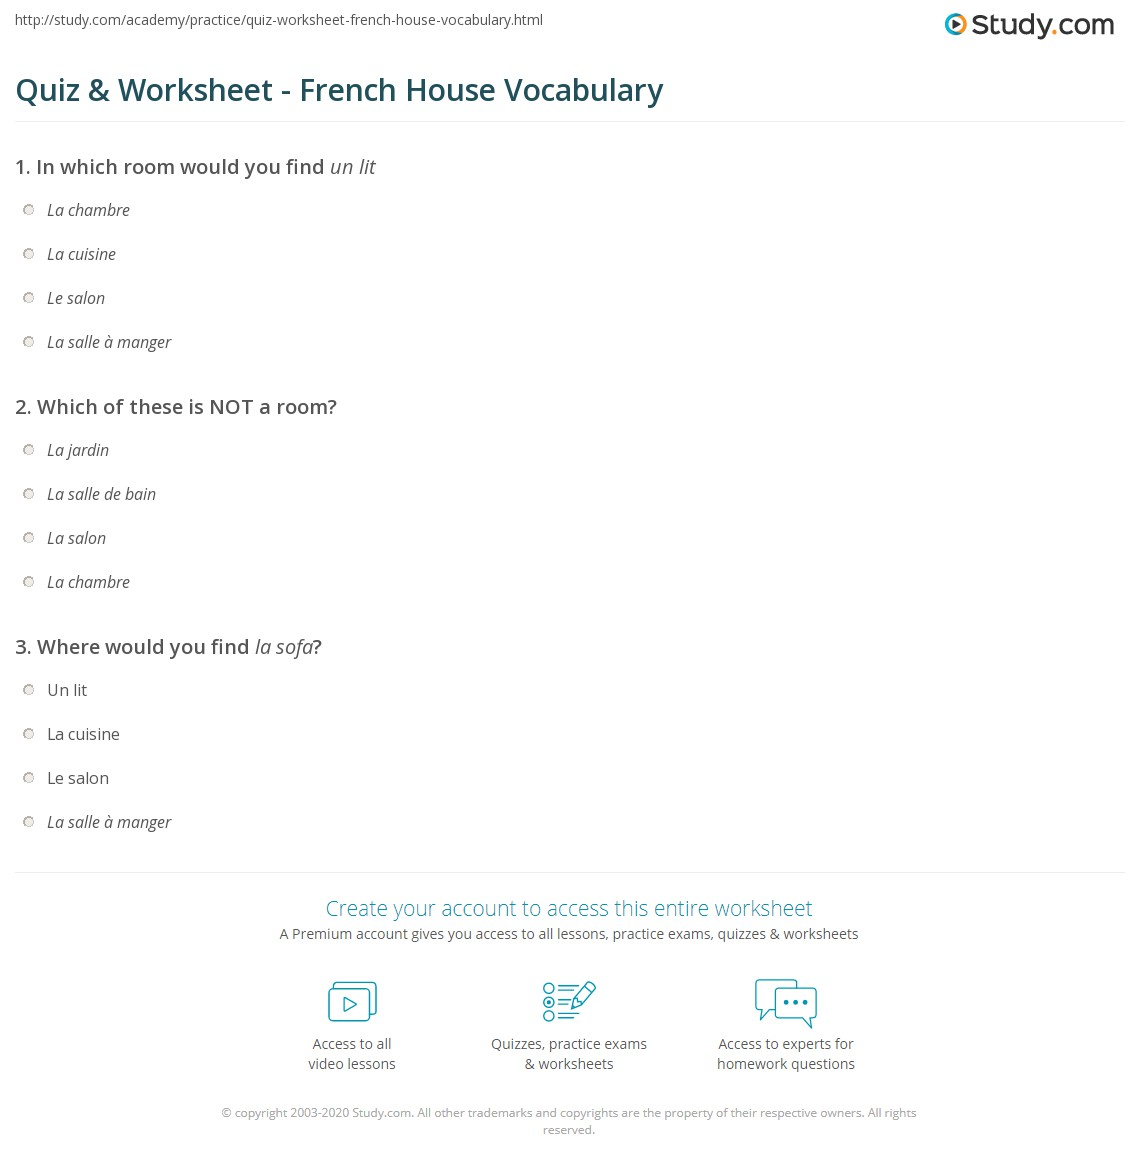 quiz worksheet french house vocabulary. Black Bedroom Furniture Sets. Home Design Ideas